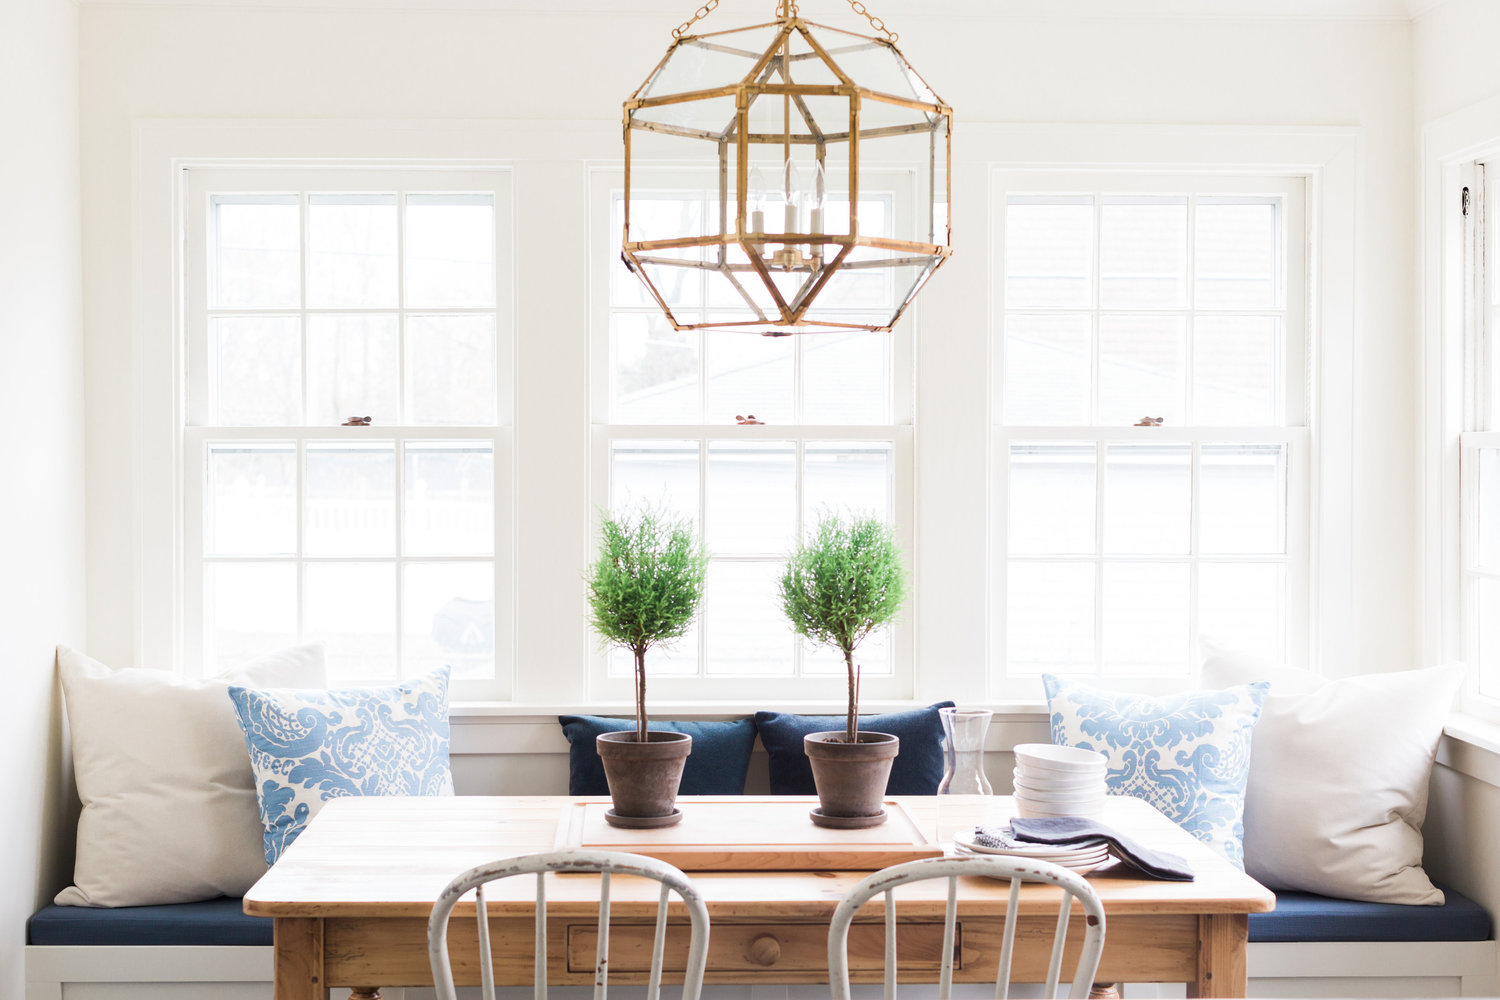 Casual elegance in the form of a breakfast nook.